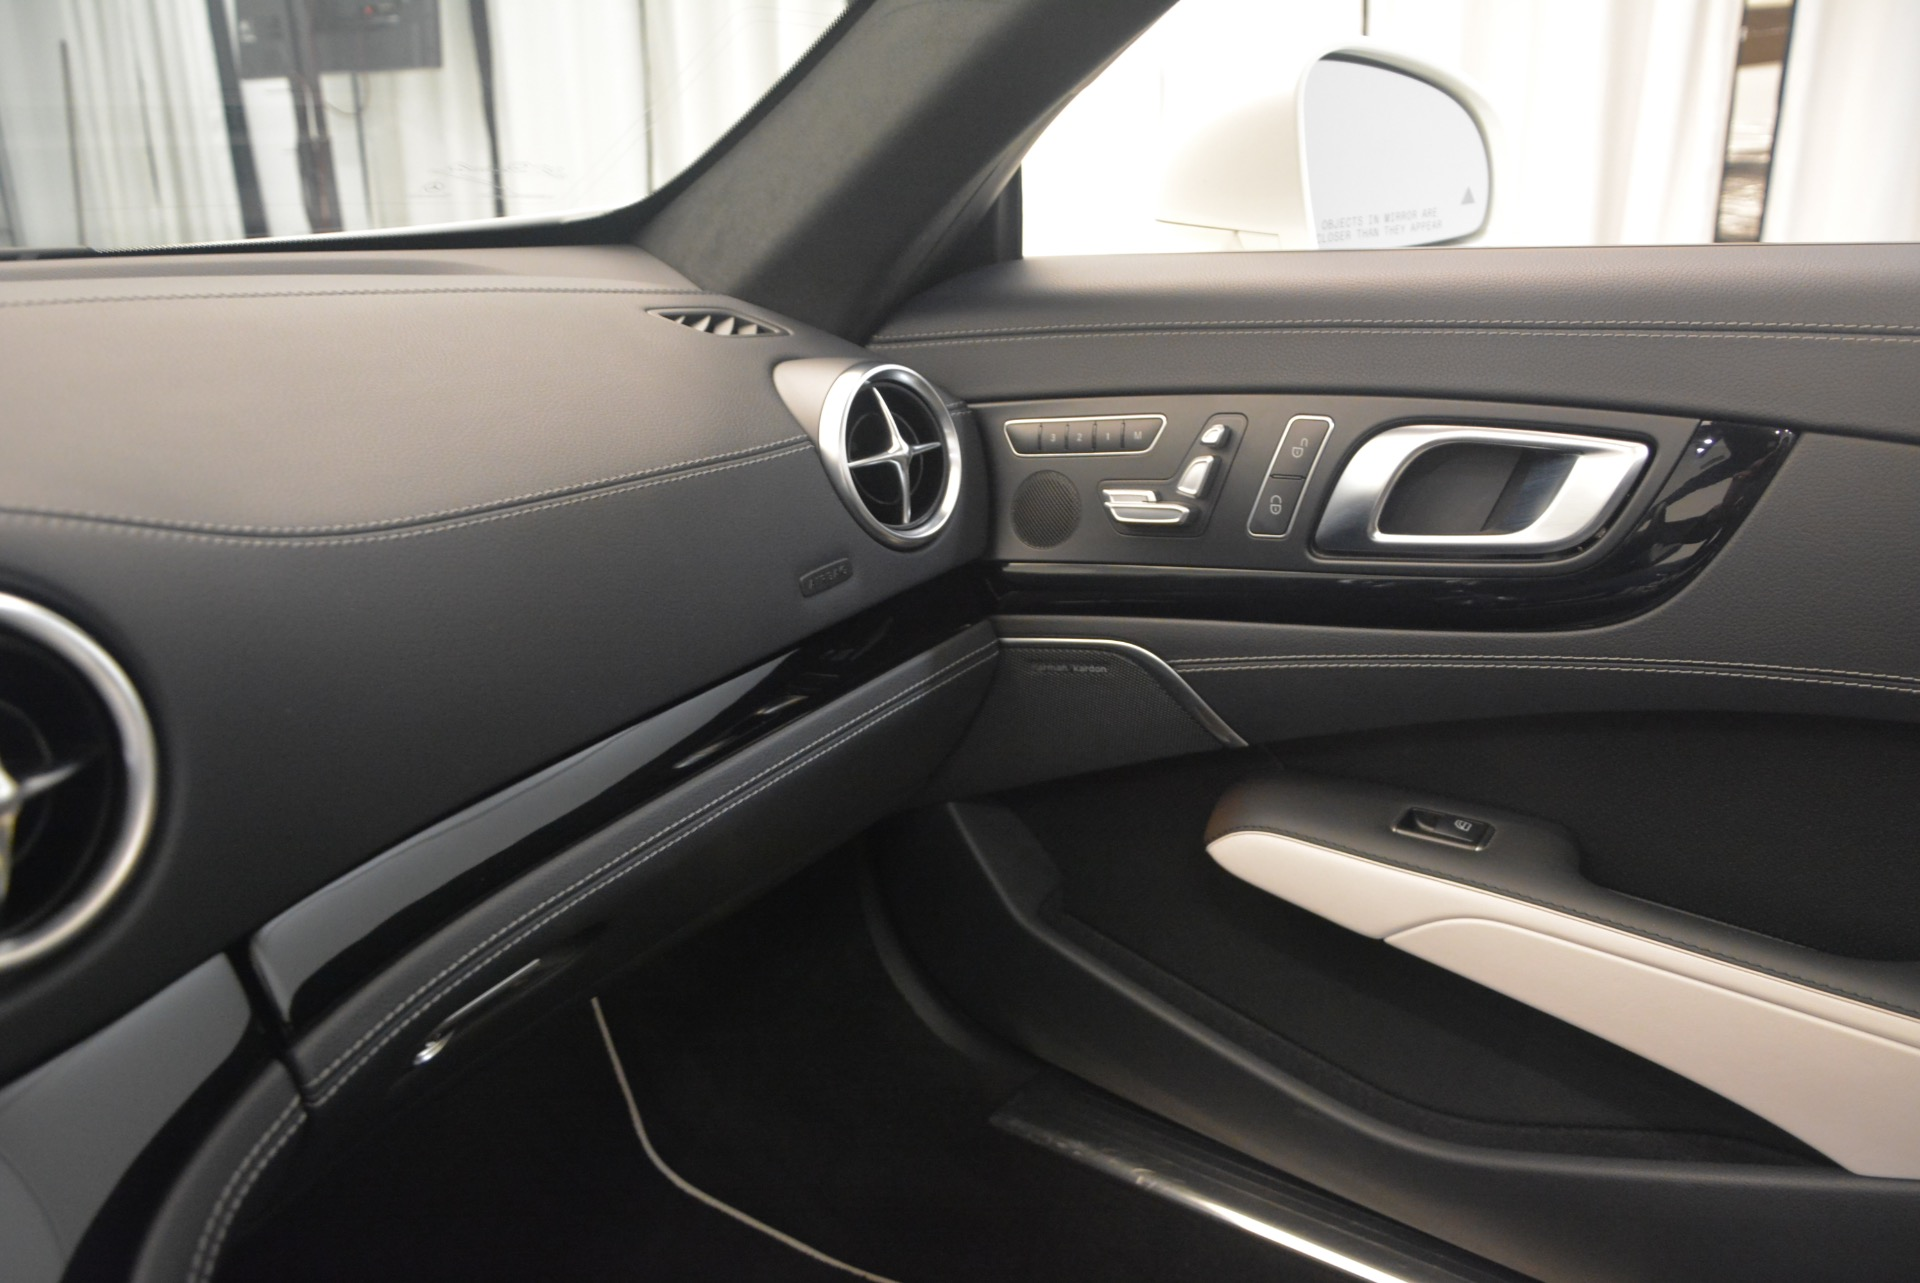 Used 2015 Mercedes Benz SL-Class SL 550 For Sale In Greenwich, CT 1261_p36